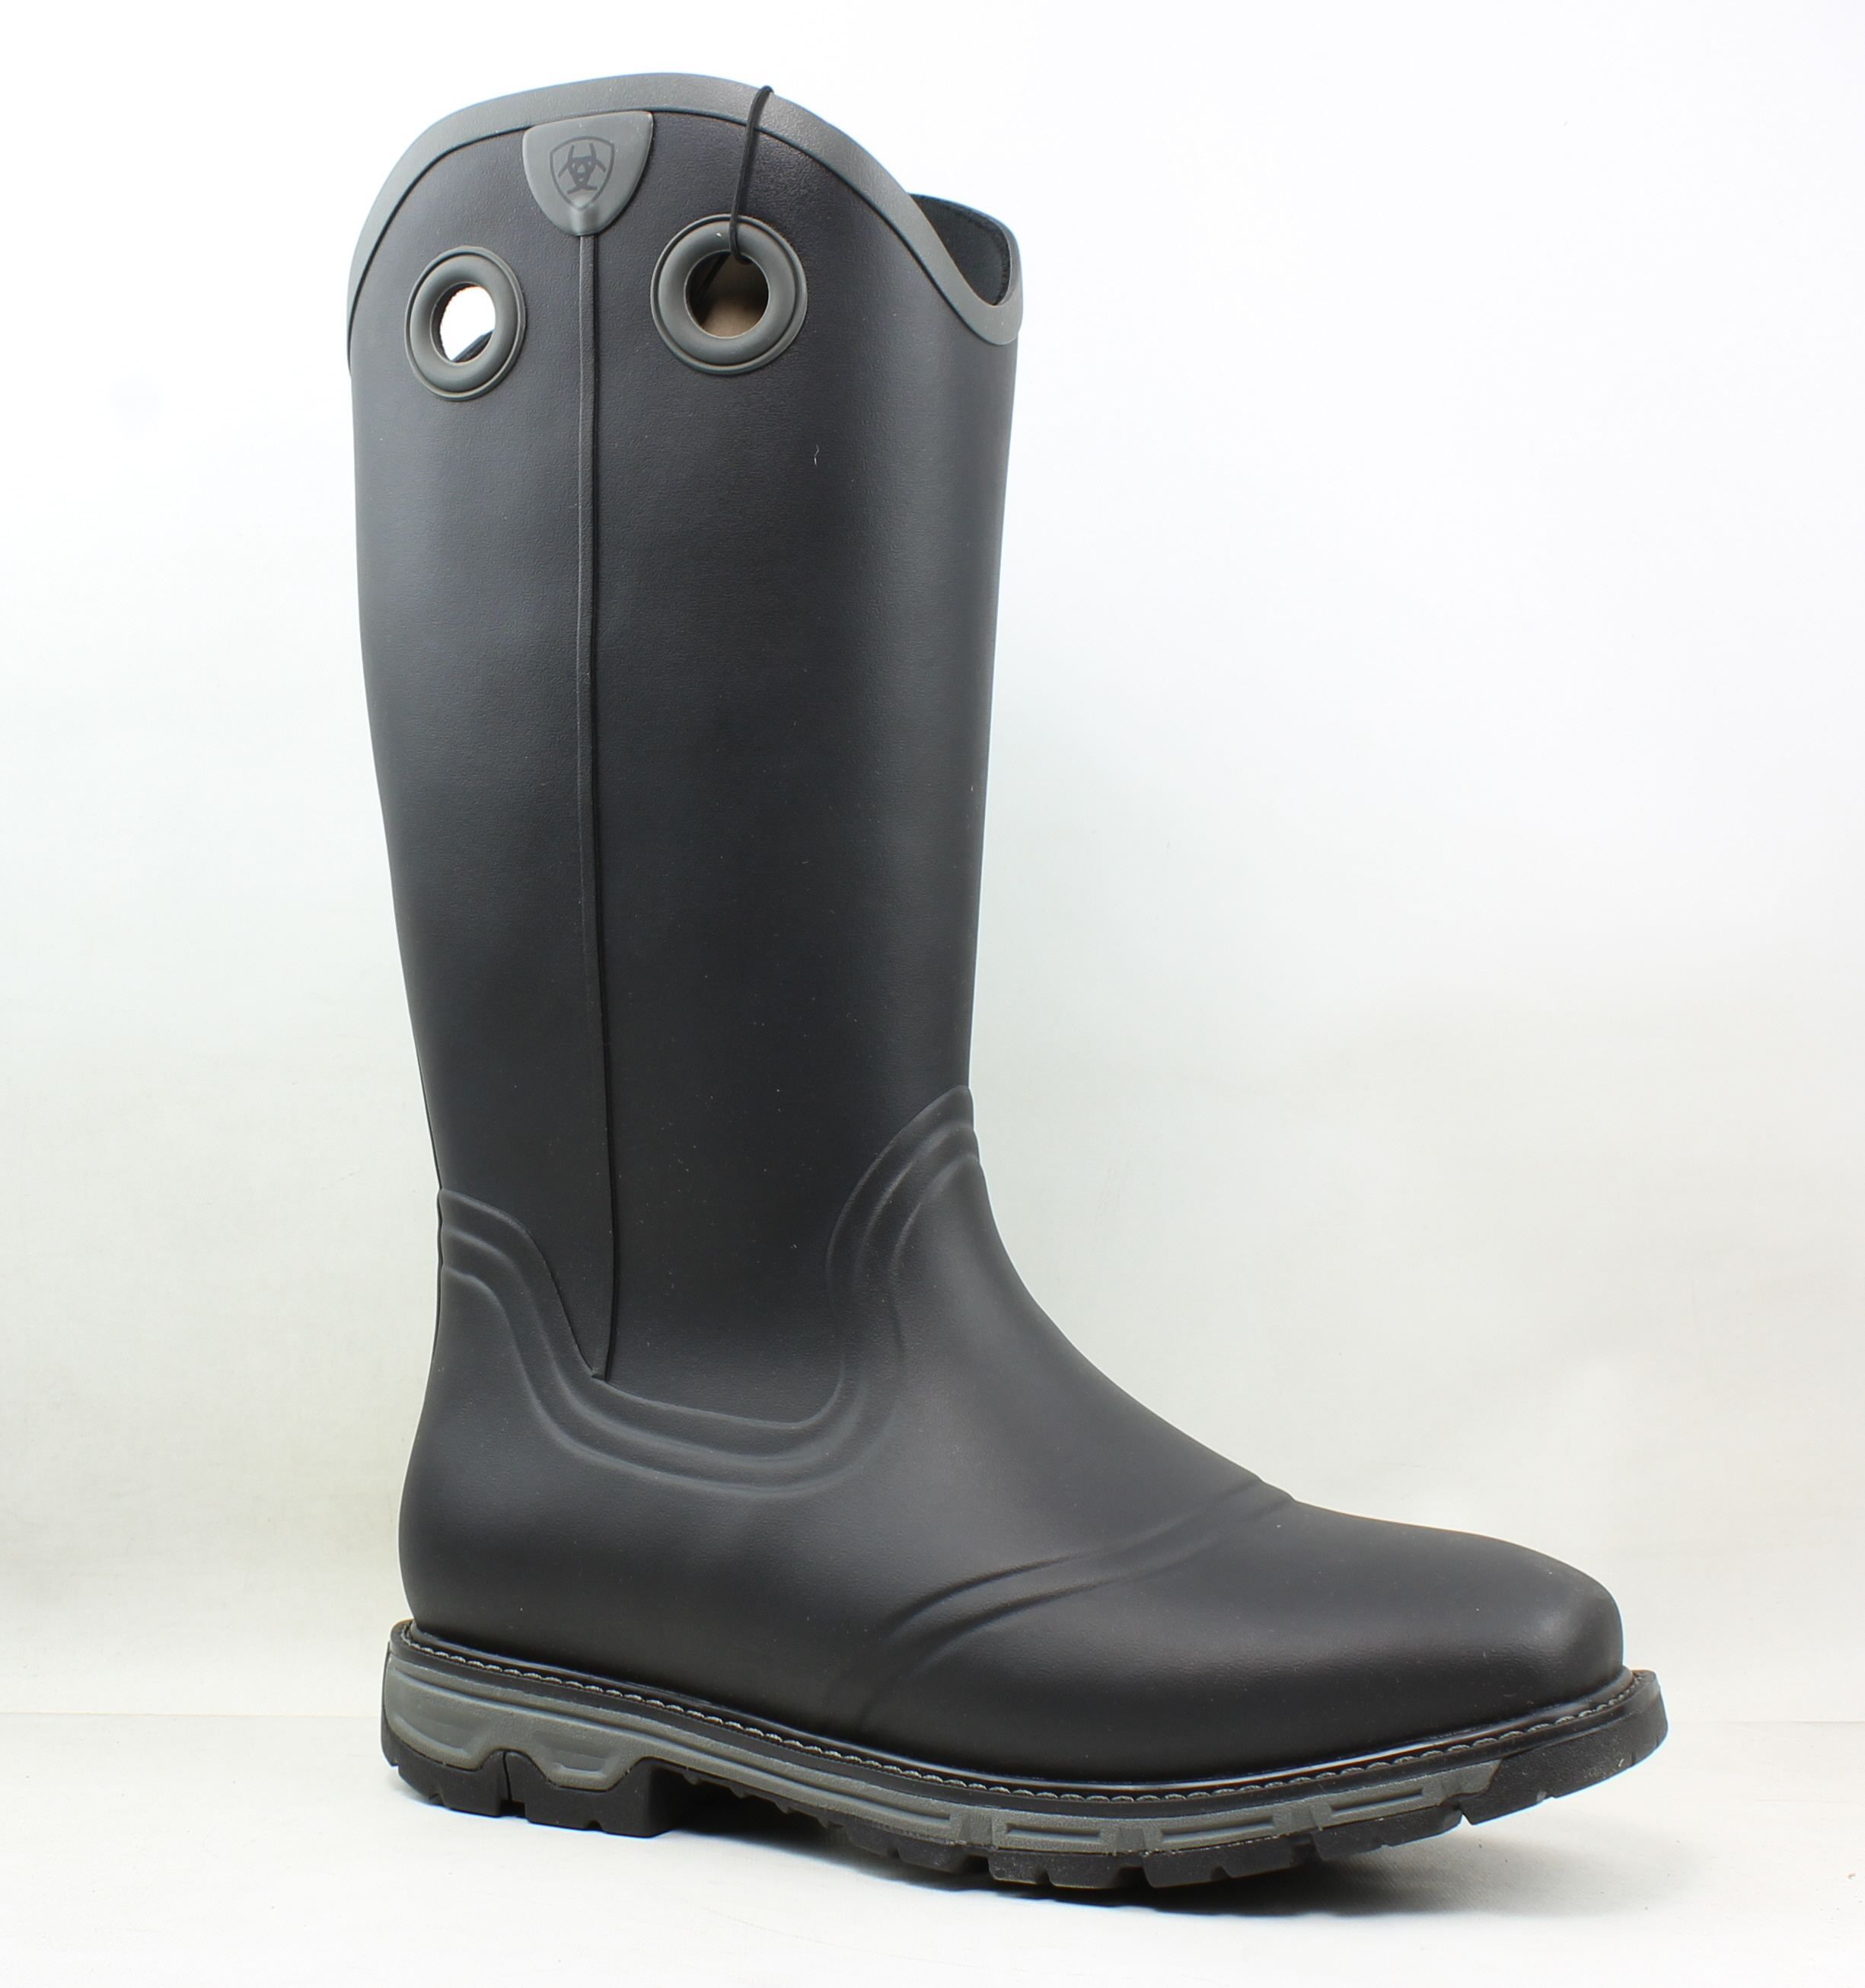 Details about New Ariat Mens Conquest Black Snow Boots Size 13 (2E) (177239) 0eaee2b5f